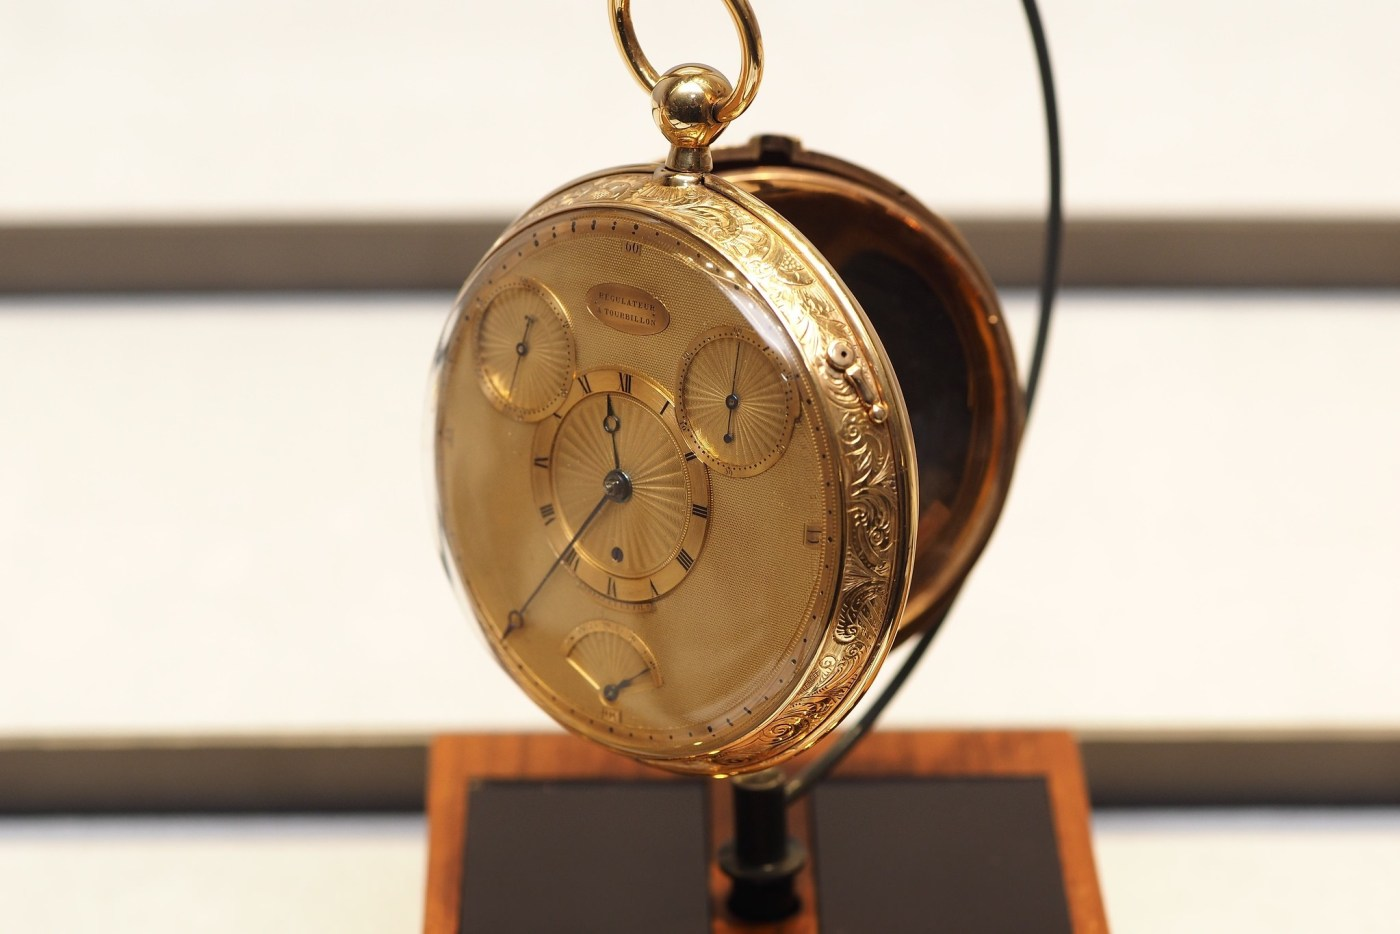 Breguet No. 1176 Montre garde-temps à tourbillon pocketwatch seen in the Breguet Museum of Paris